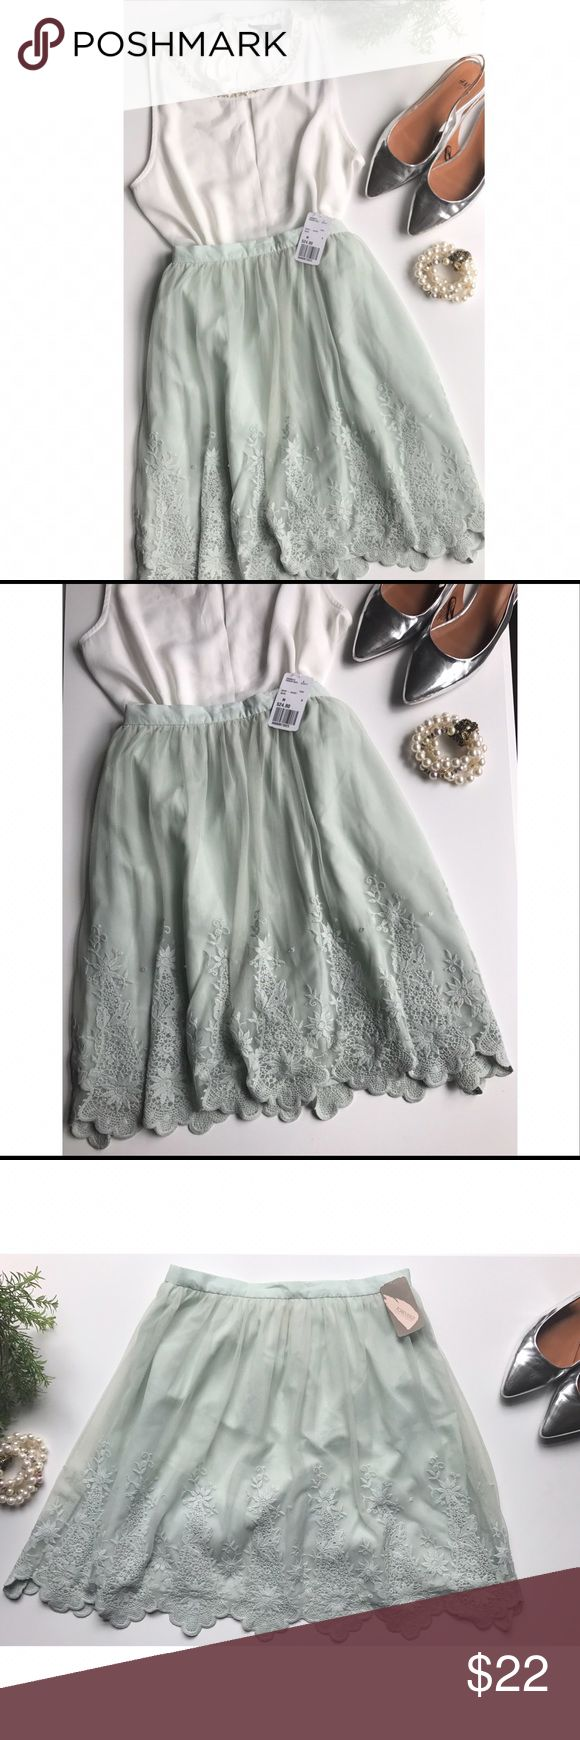 Forever 21 Embroidered Lace Skirt in Sage A beautiful dainty embroidered lace skirt by Forever 21.                                   Size Medium. Brand new with tag.                                                Skirt is lined. Working zipper in back.                                                                     Please feel free to ask questions or for more photos. I'm happy to answer. Make an offer💕 Forever 21 Skirts Mini